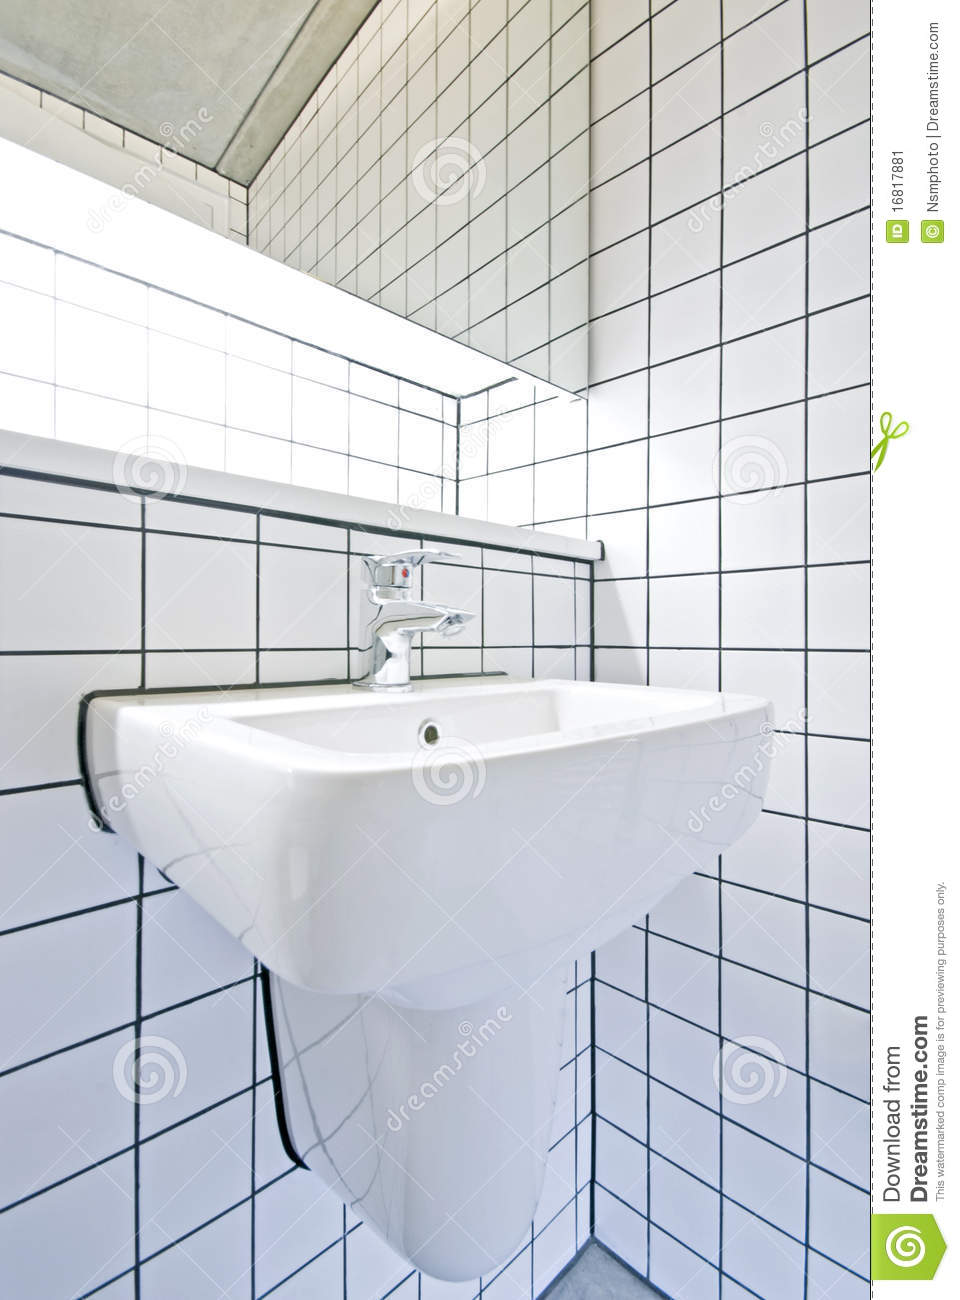 Contemporary bathroom detail with retro tiled wall stock for Detail in contemporary bathroom design